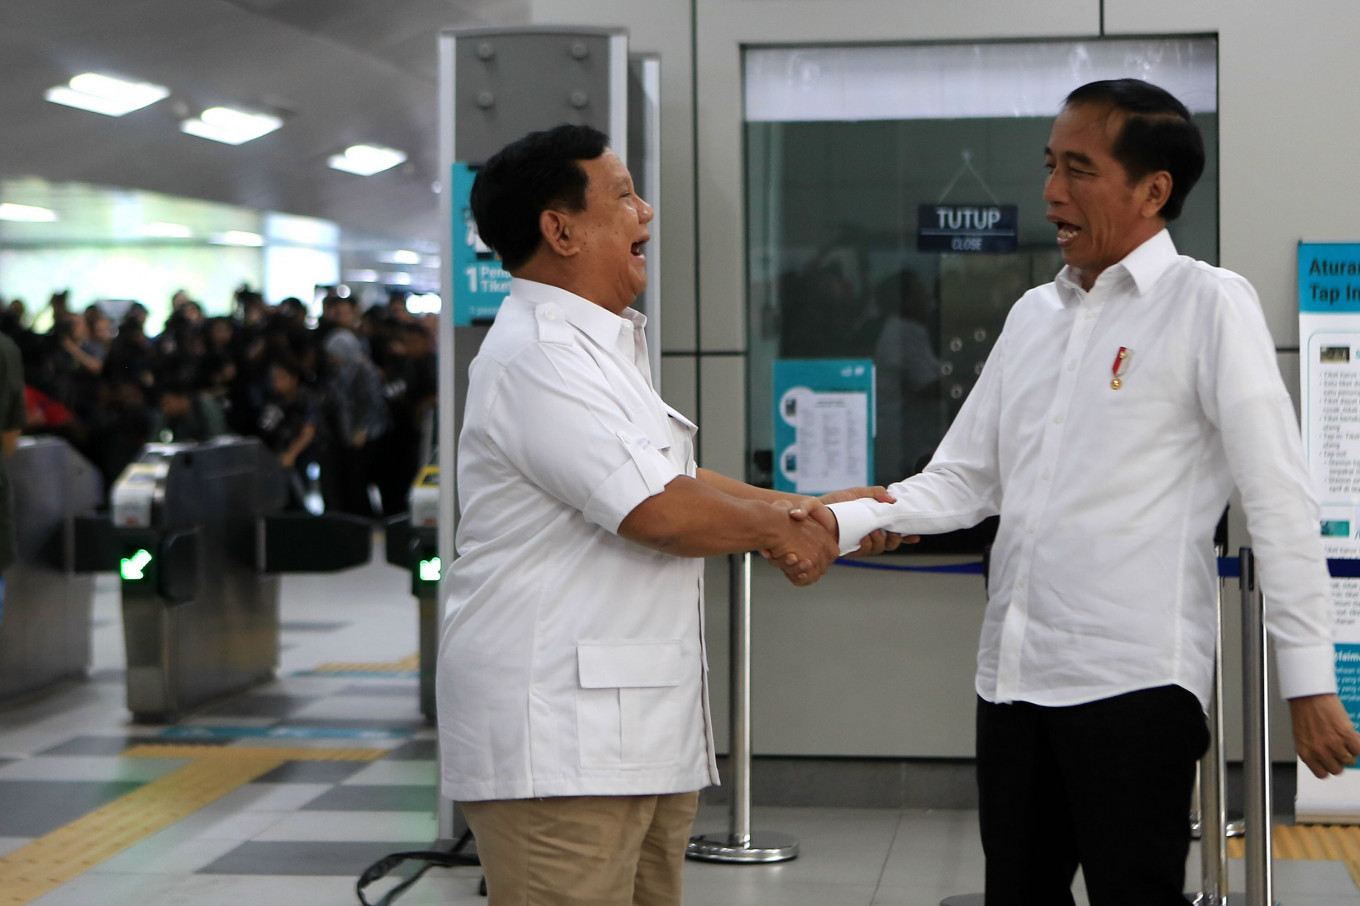 Political parties appreciate Jokowi-Prabowo meeting, hope for peace